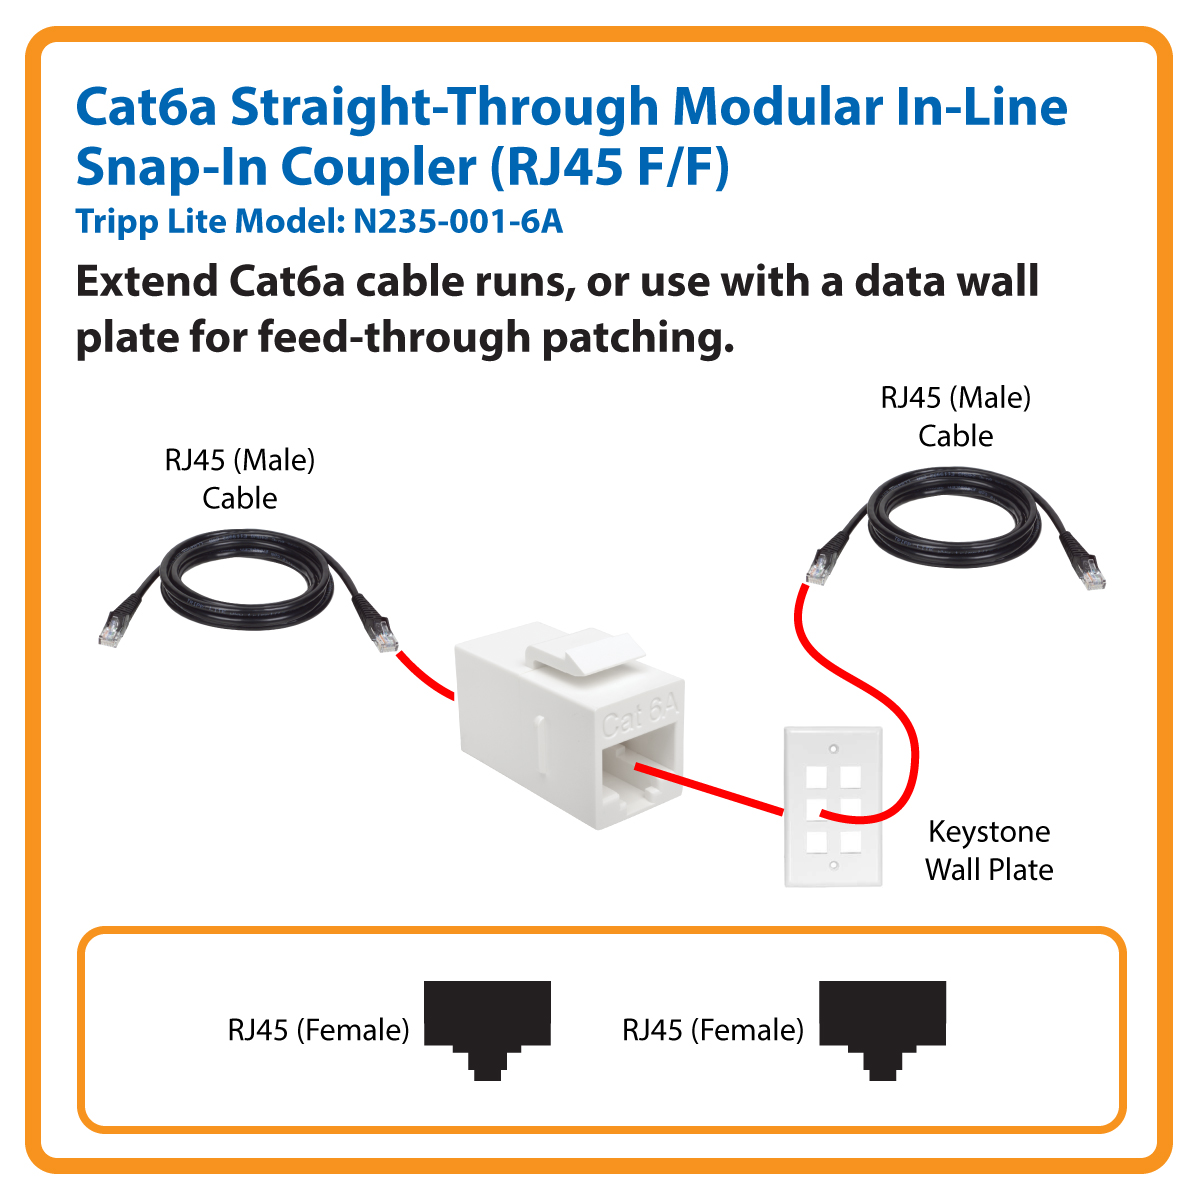 Tripp Lite Cat6a Straight Through Modular In Line Snap Coupler Wire Diagram Rj45 F N235 001 6a Network Cable Accessories